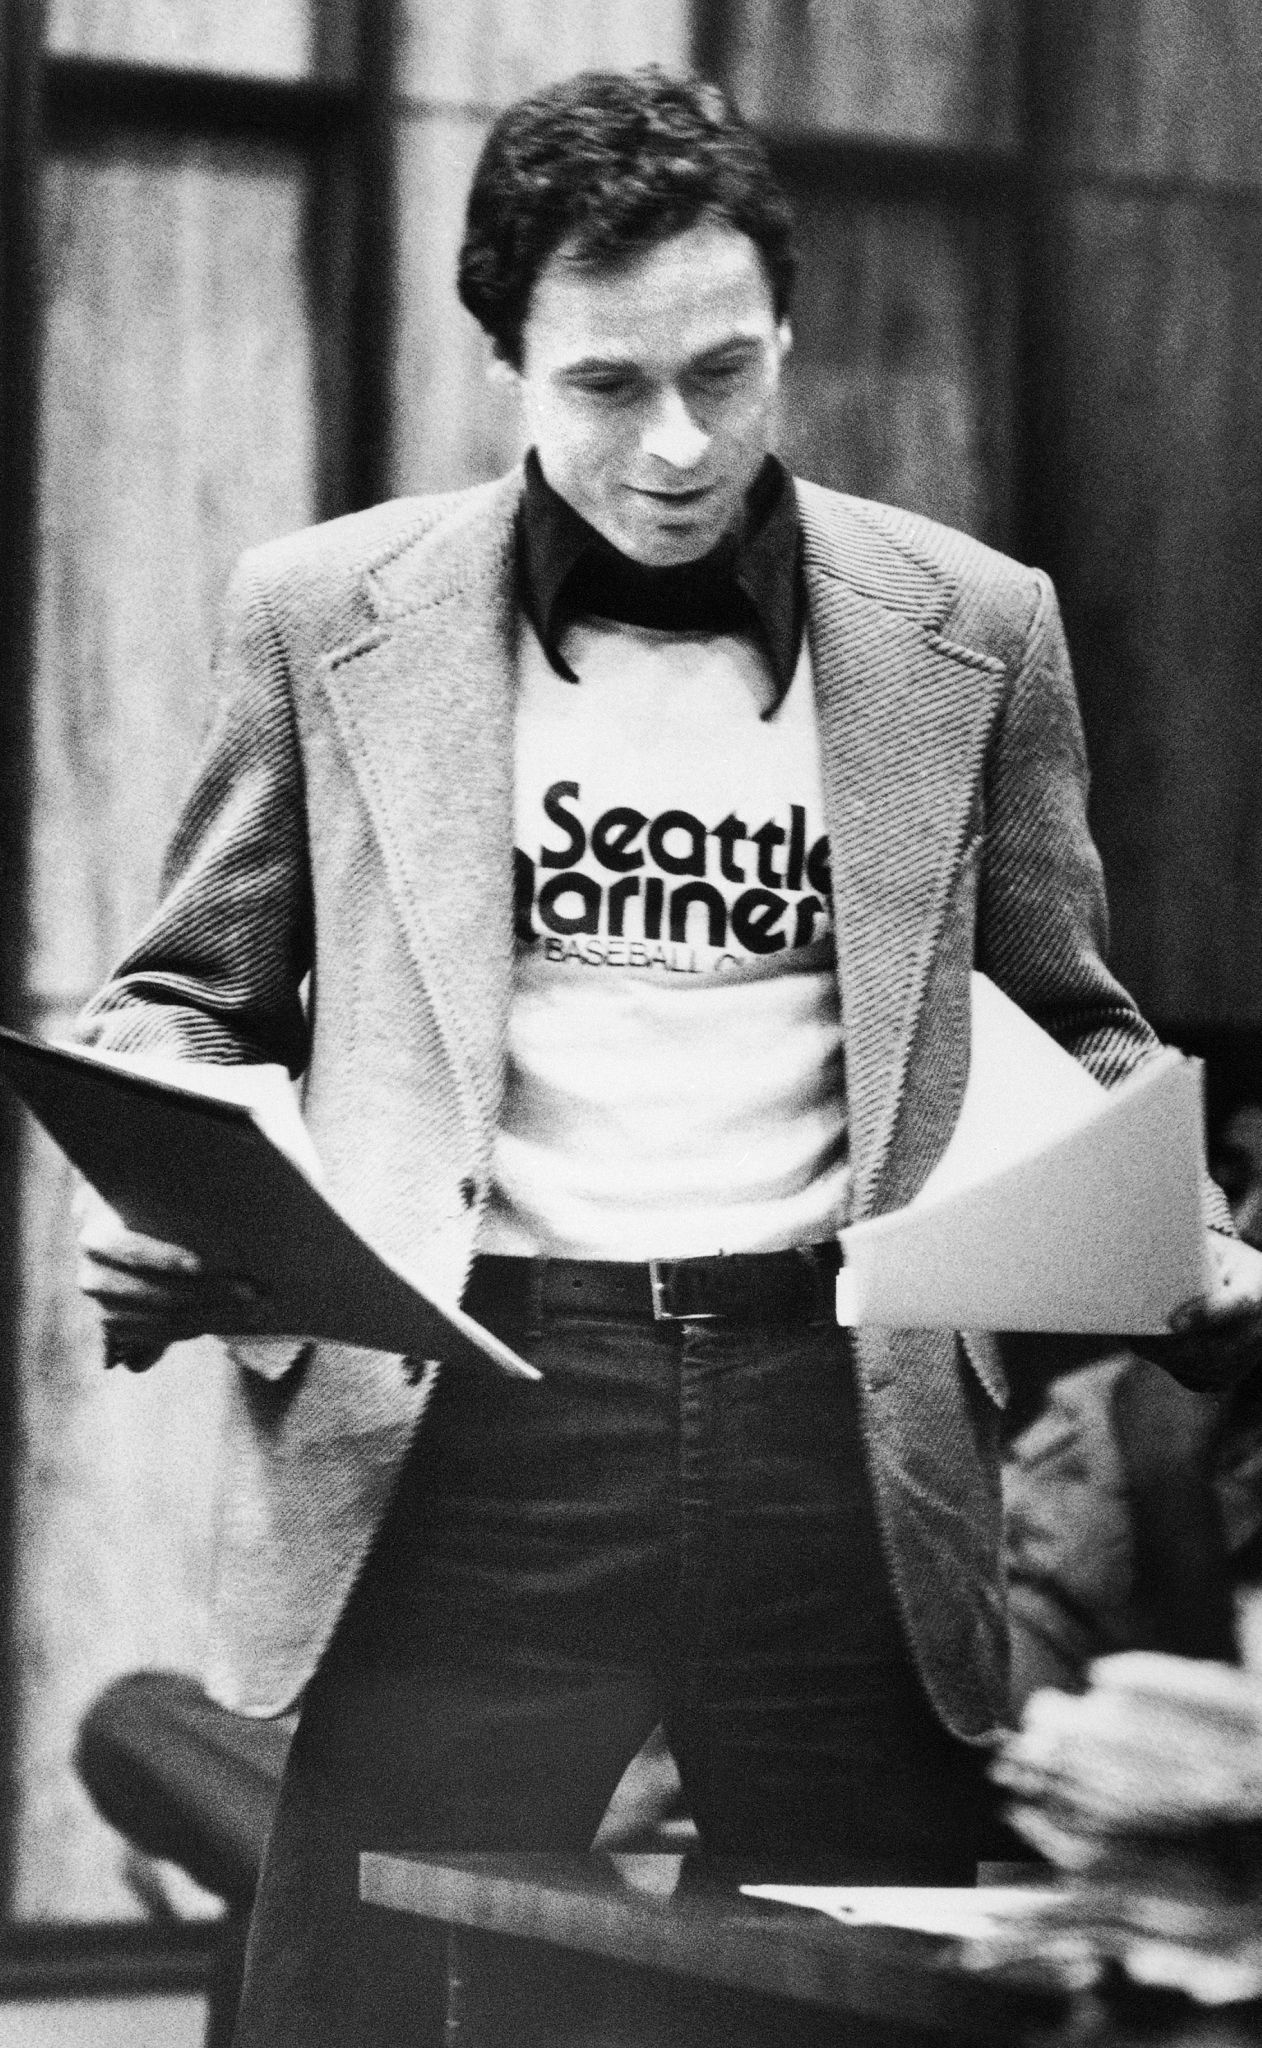 30 years ago today, serial killer Ted Bundy was executed by